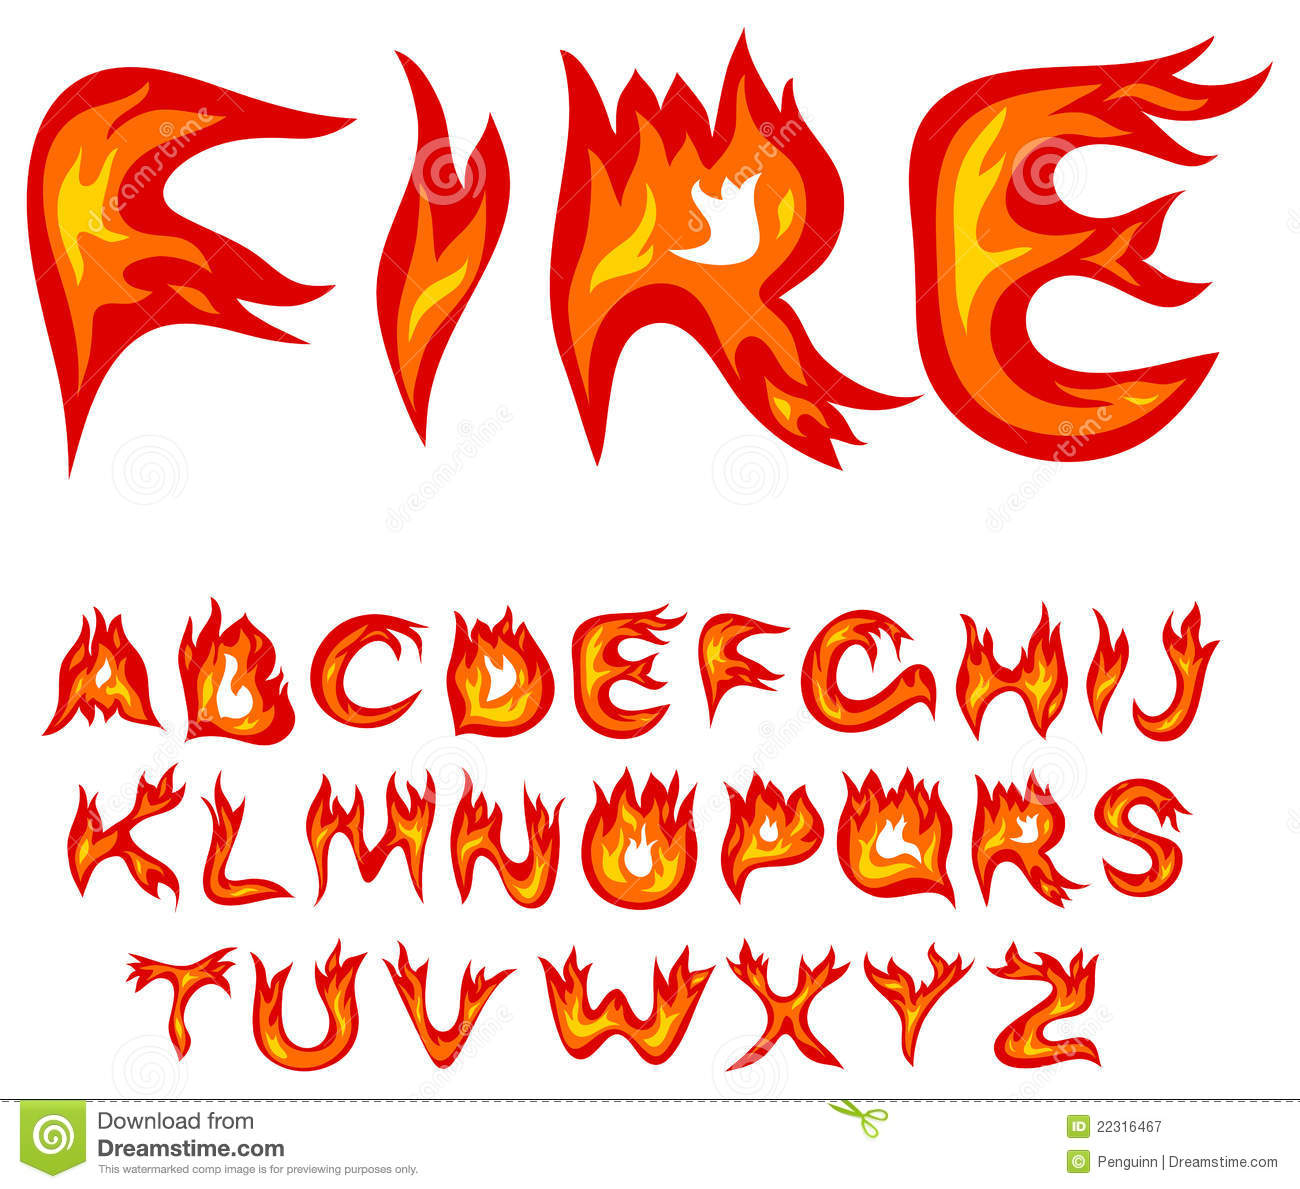 Clipart flaming letters vector royalty free stock Flaming Letters Clipart - Clipart Kid vector royalty free stock